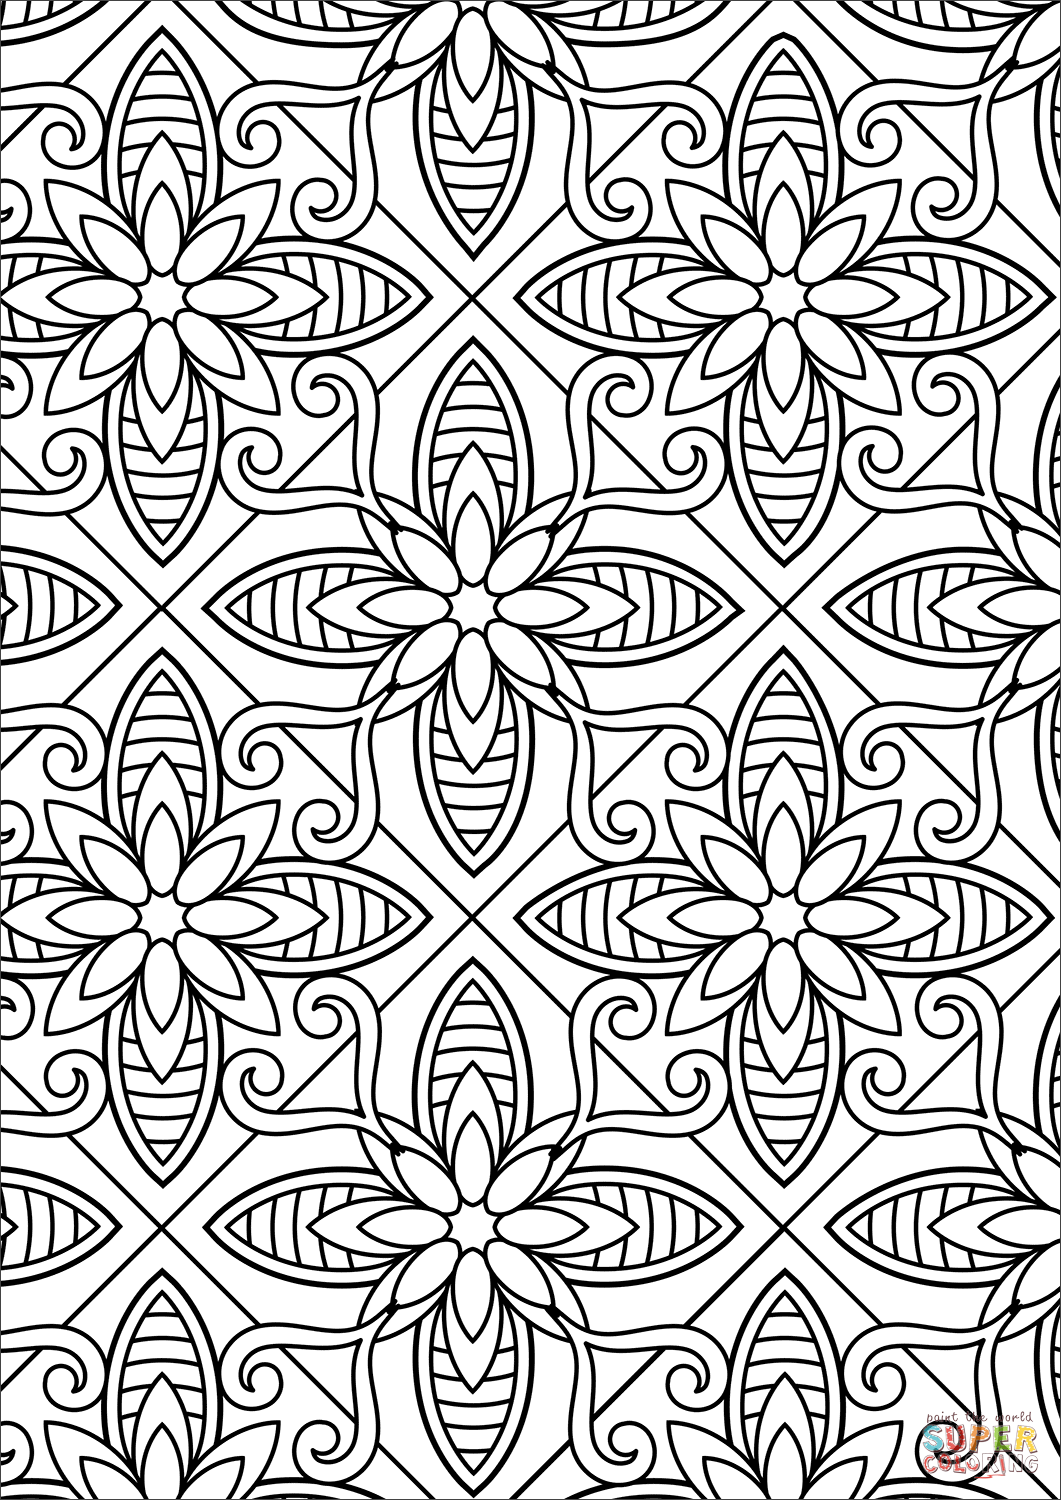 designs to color free floral pattern coloring page free printable coloring pages designs to free color